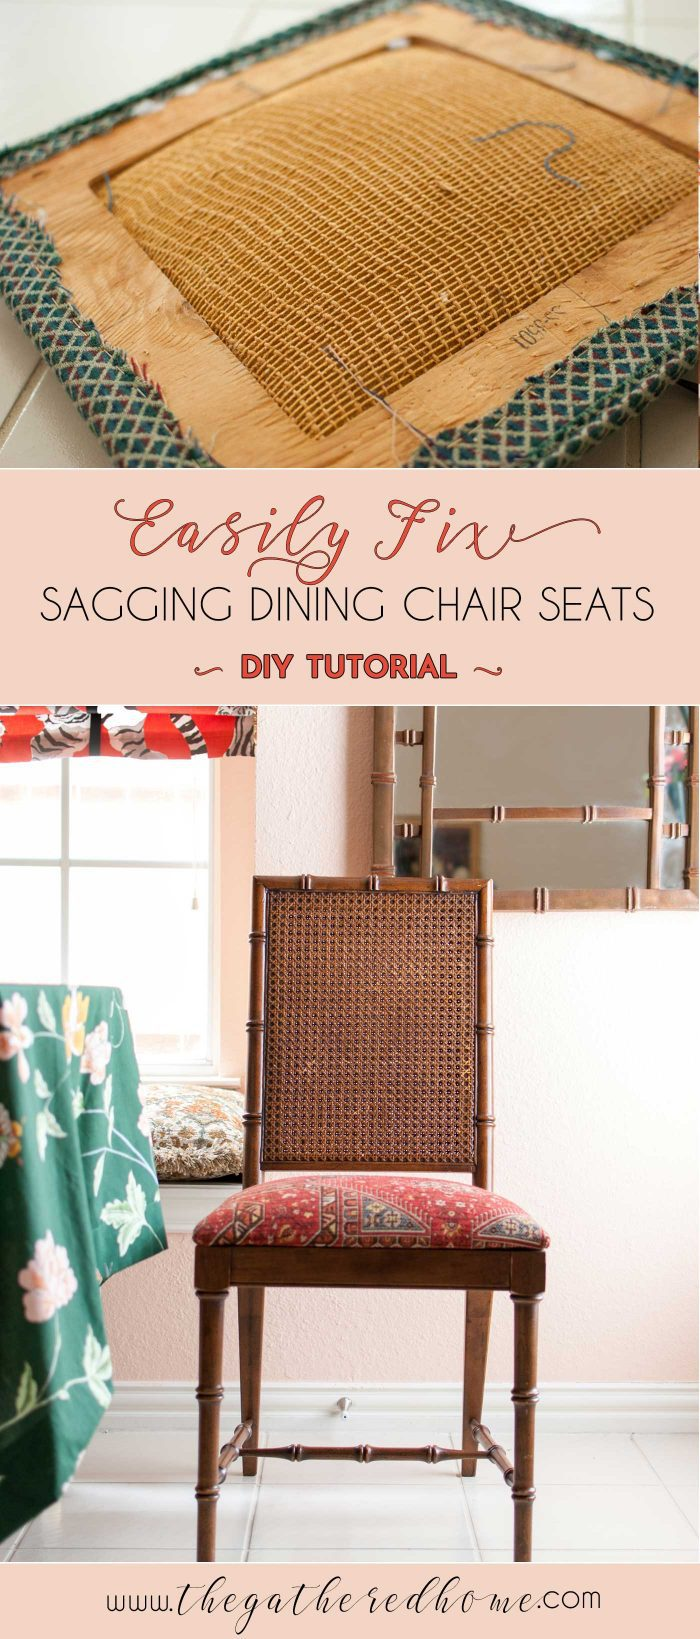 How To Fix A Sagging Dining Chair Seat The Gathered Home